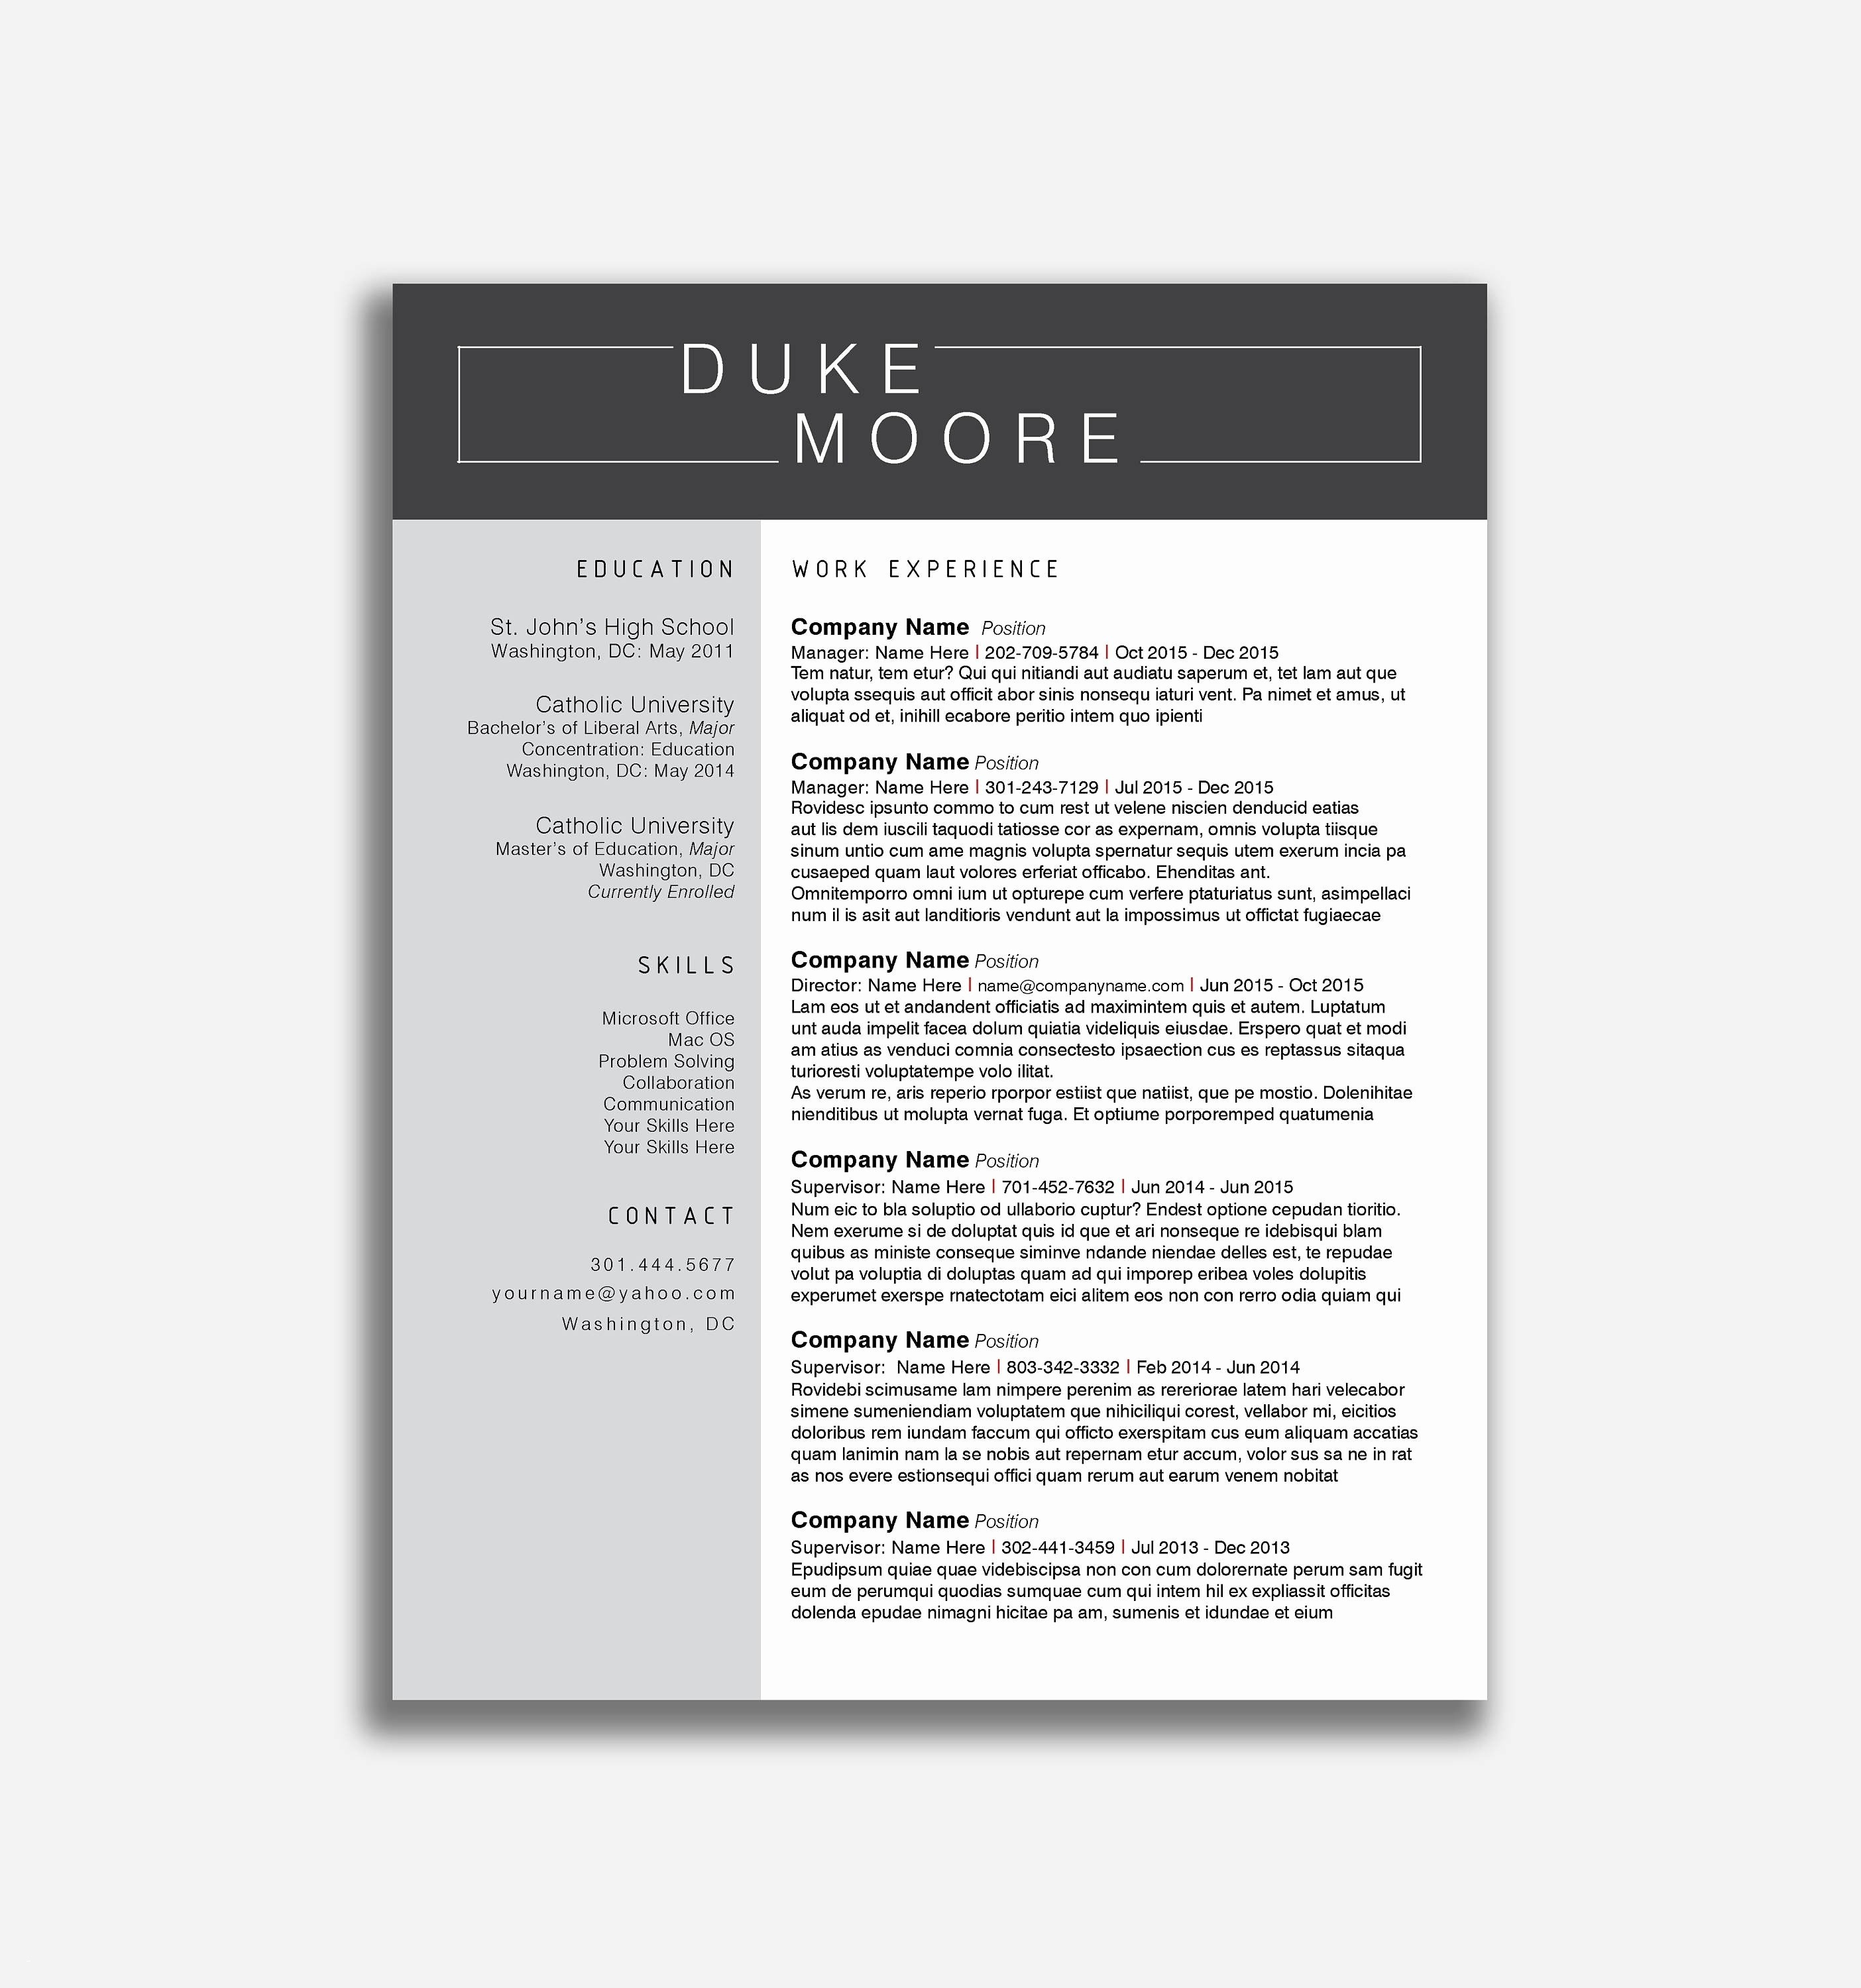 Fine Arts Resume Template - Free Creative Resume Templates Microsoft Word Best Resume